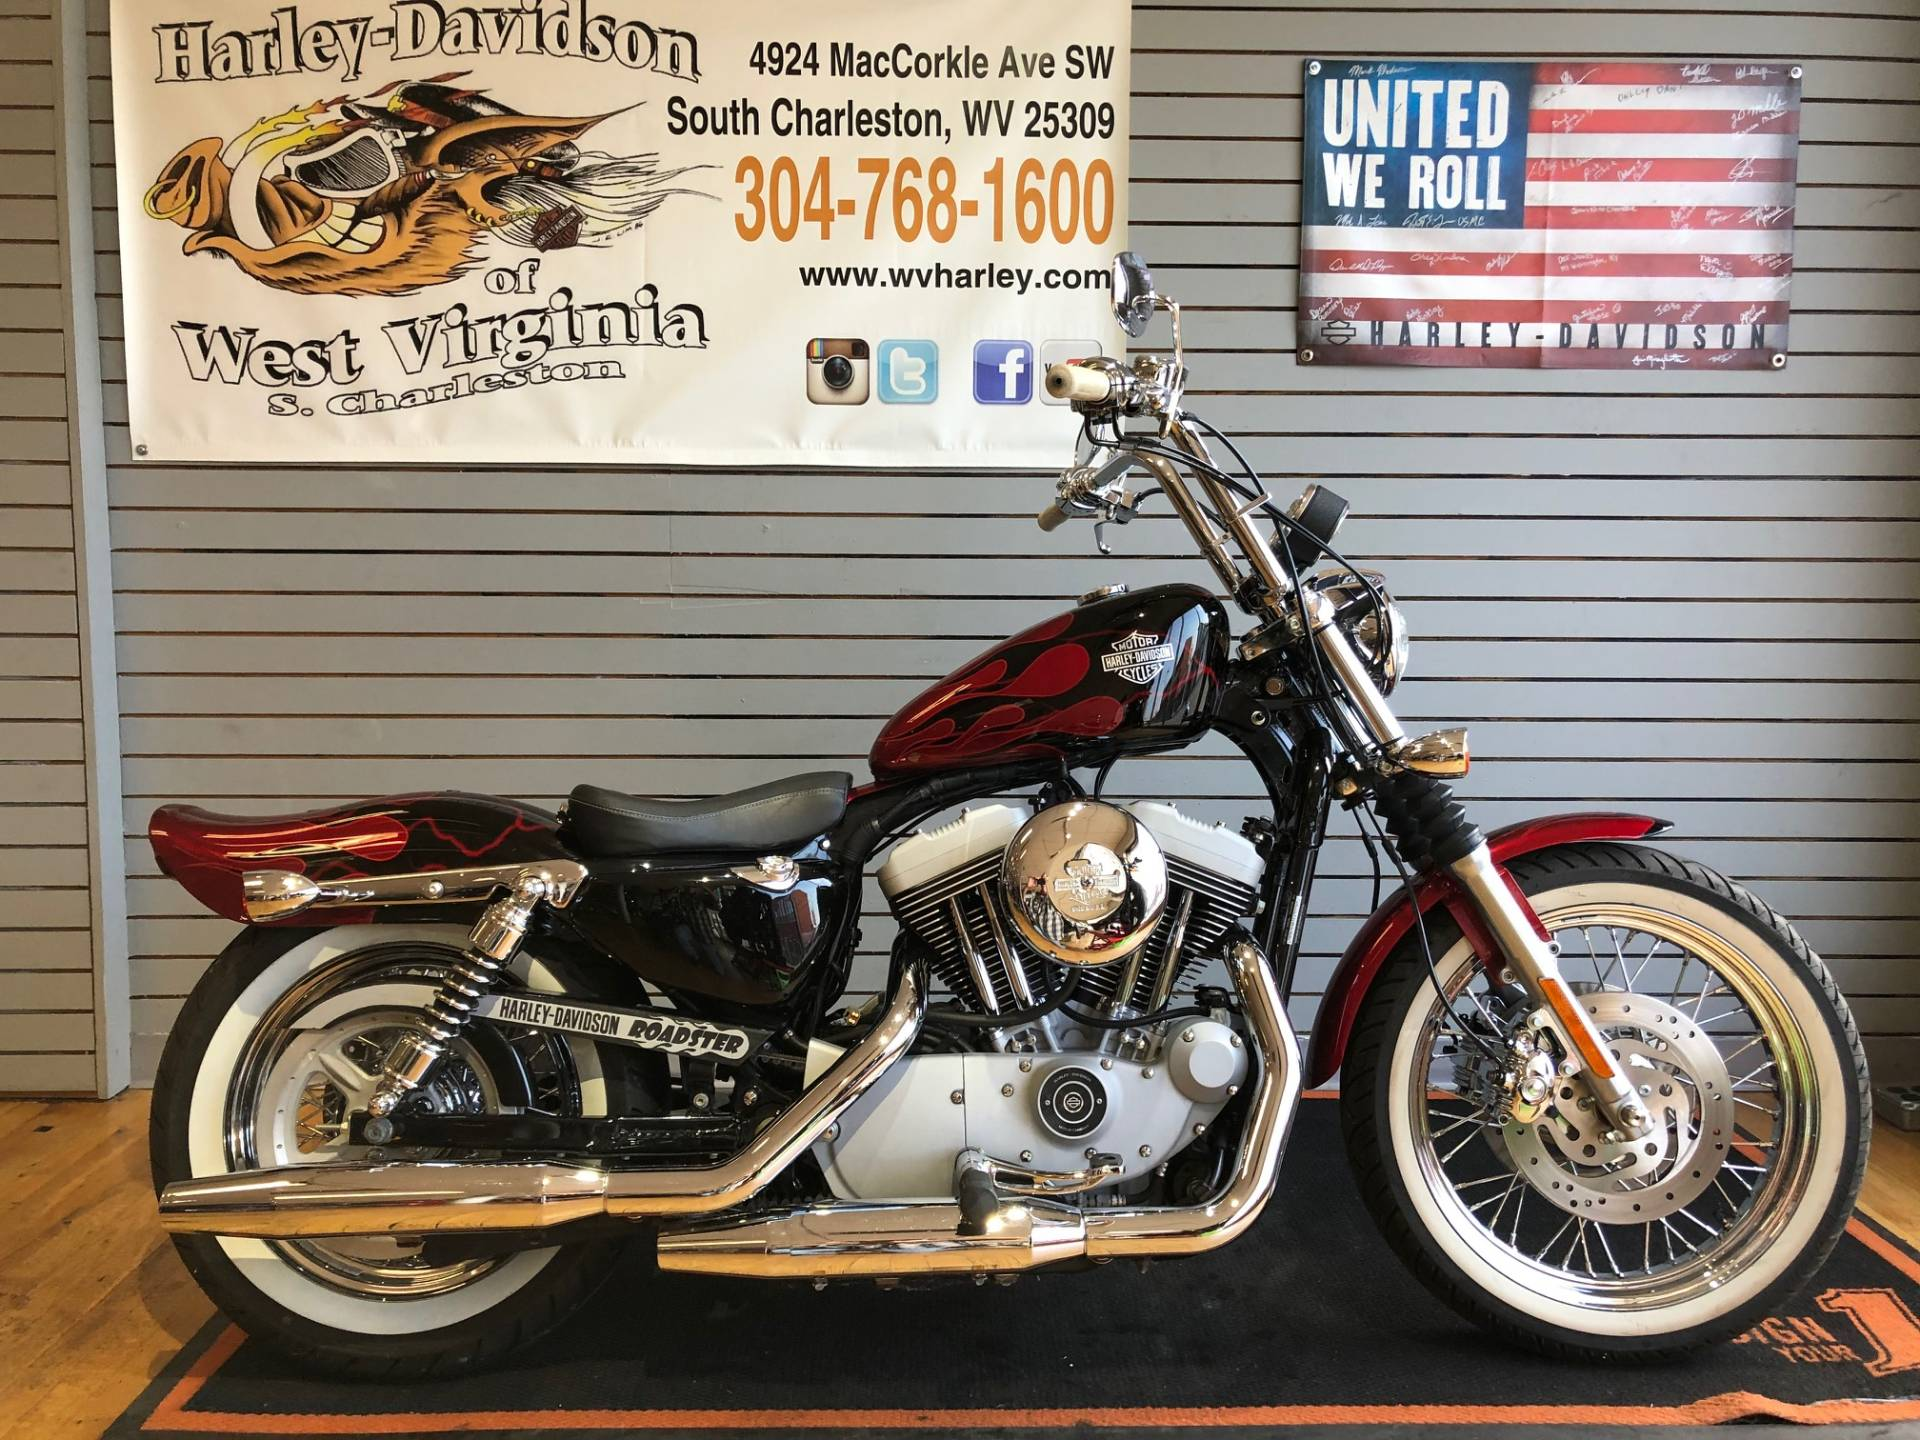 2004 Harley-Davidson Sportster® XL 1200 Roadster in South Charleston, West Virginia - Photo 1